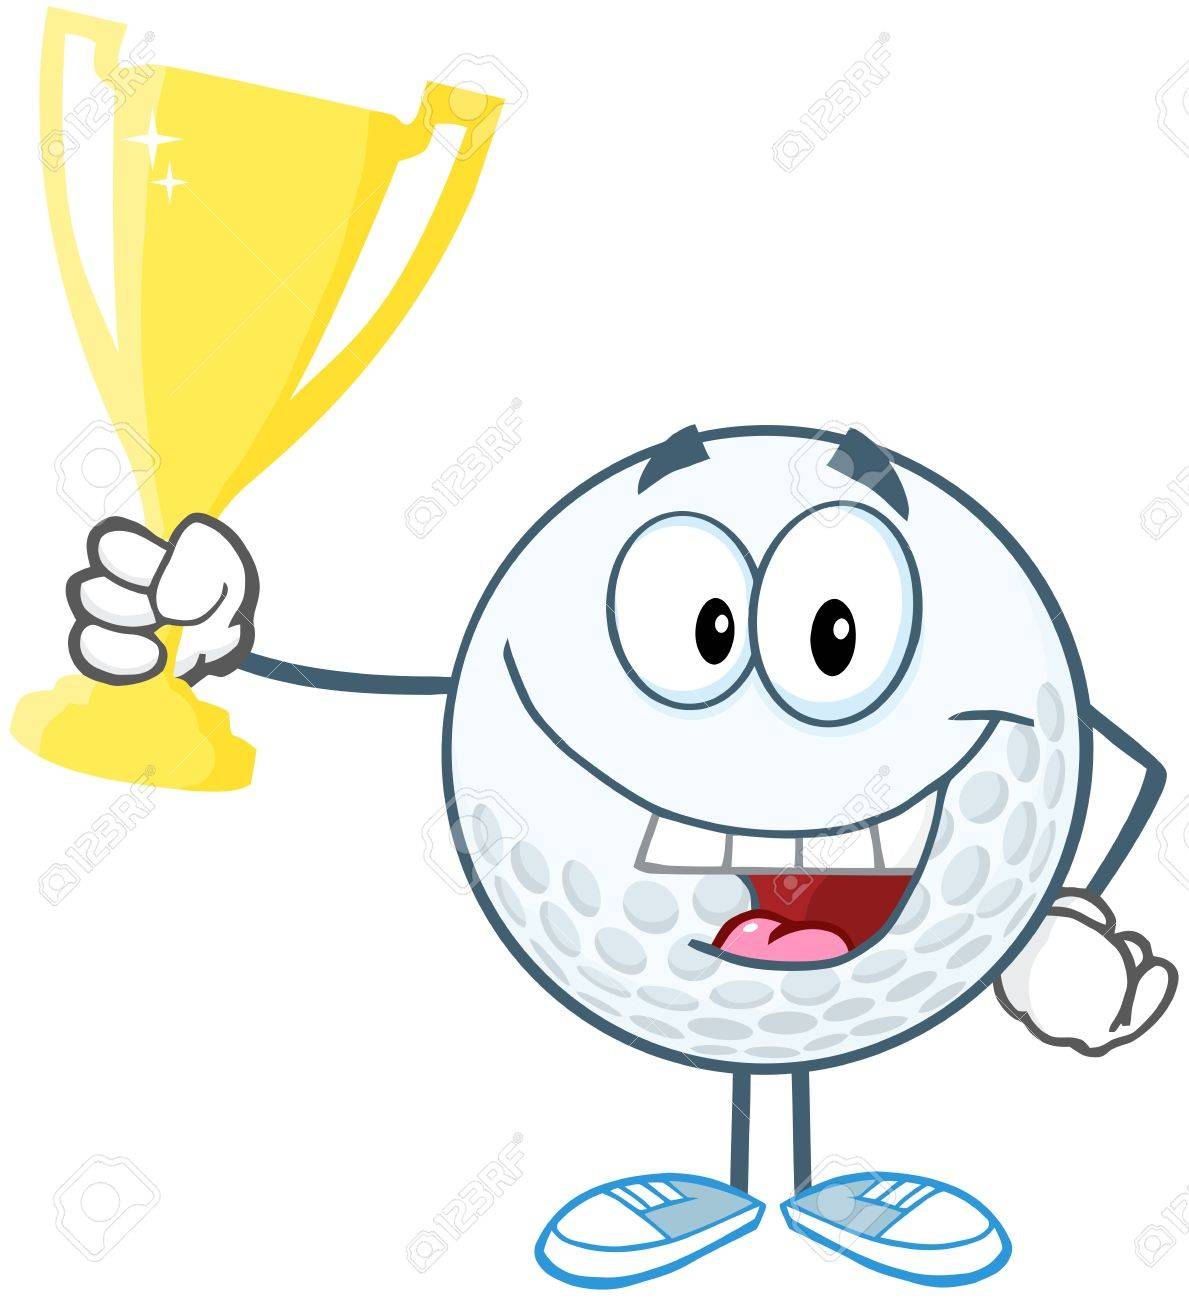 Happy Golf Ball Holding Prize Trophy Cup Royalty Free Cliparts Vectors And Stock Illustration Image 20749076